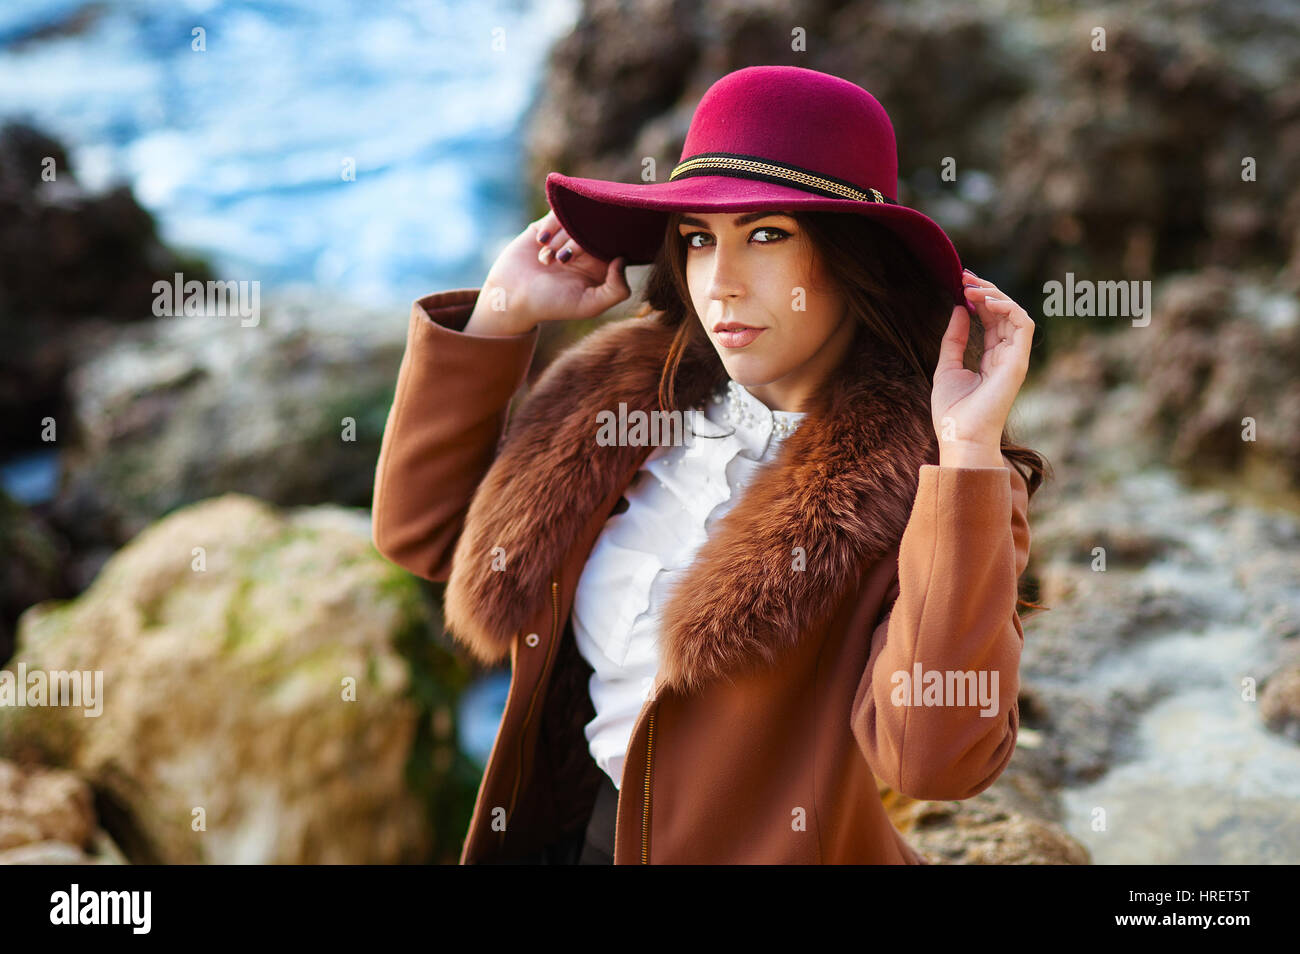 Cheerful lovely young woman in maroon felt hat and drape coat standing and laughing on pier in spring - Stock Image